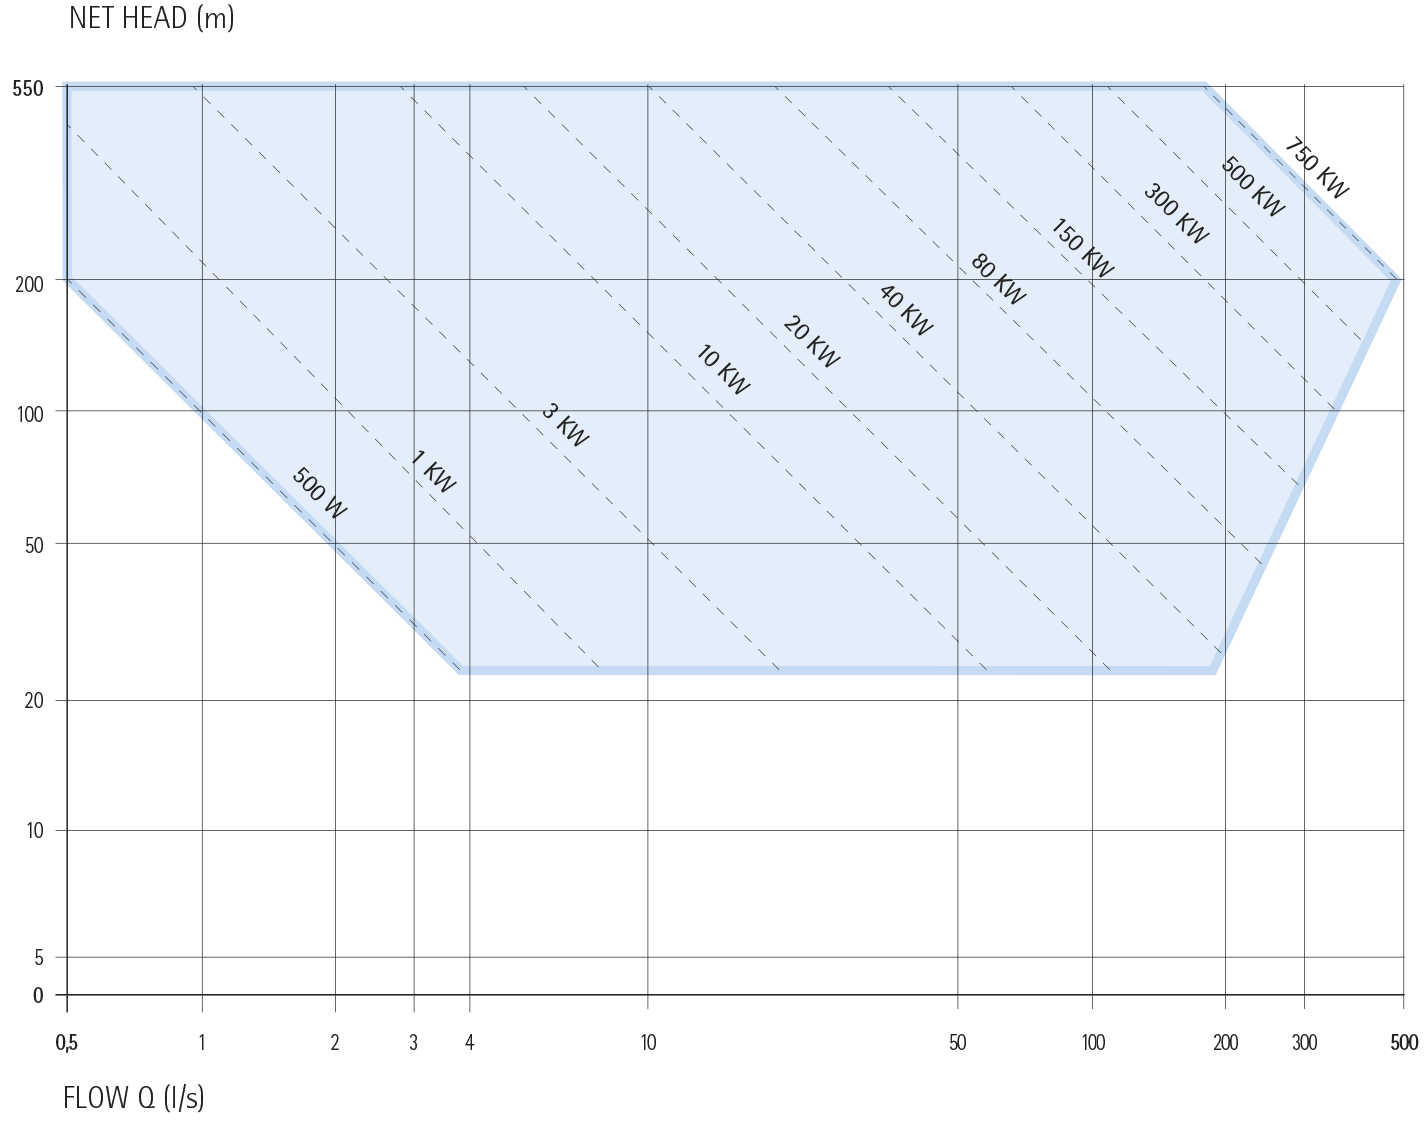 IREM ECOWATT HYDRO TURBINE POWER CHART